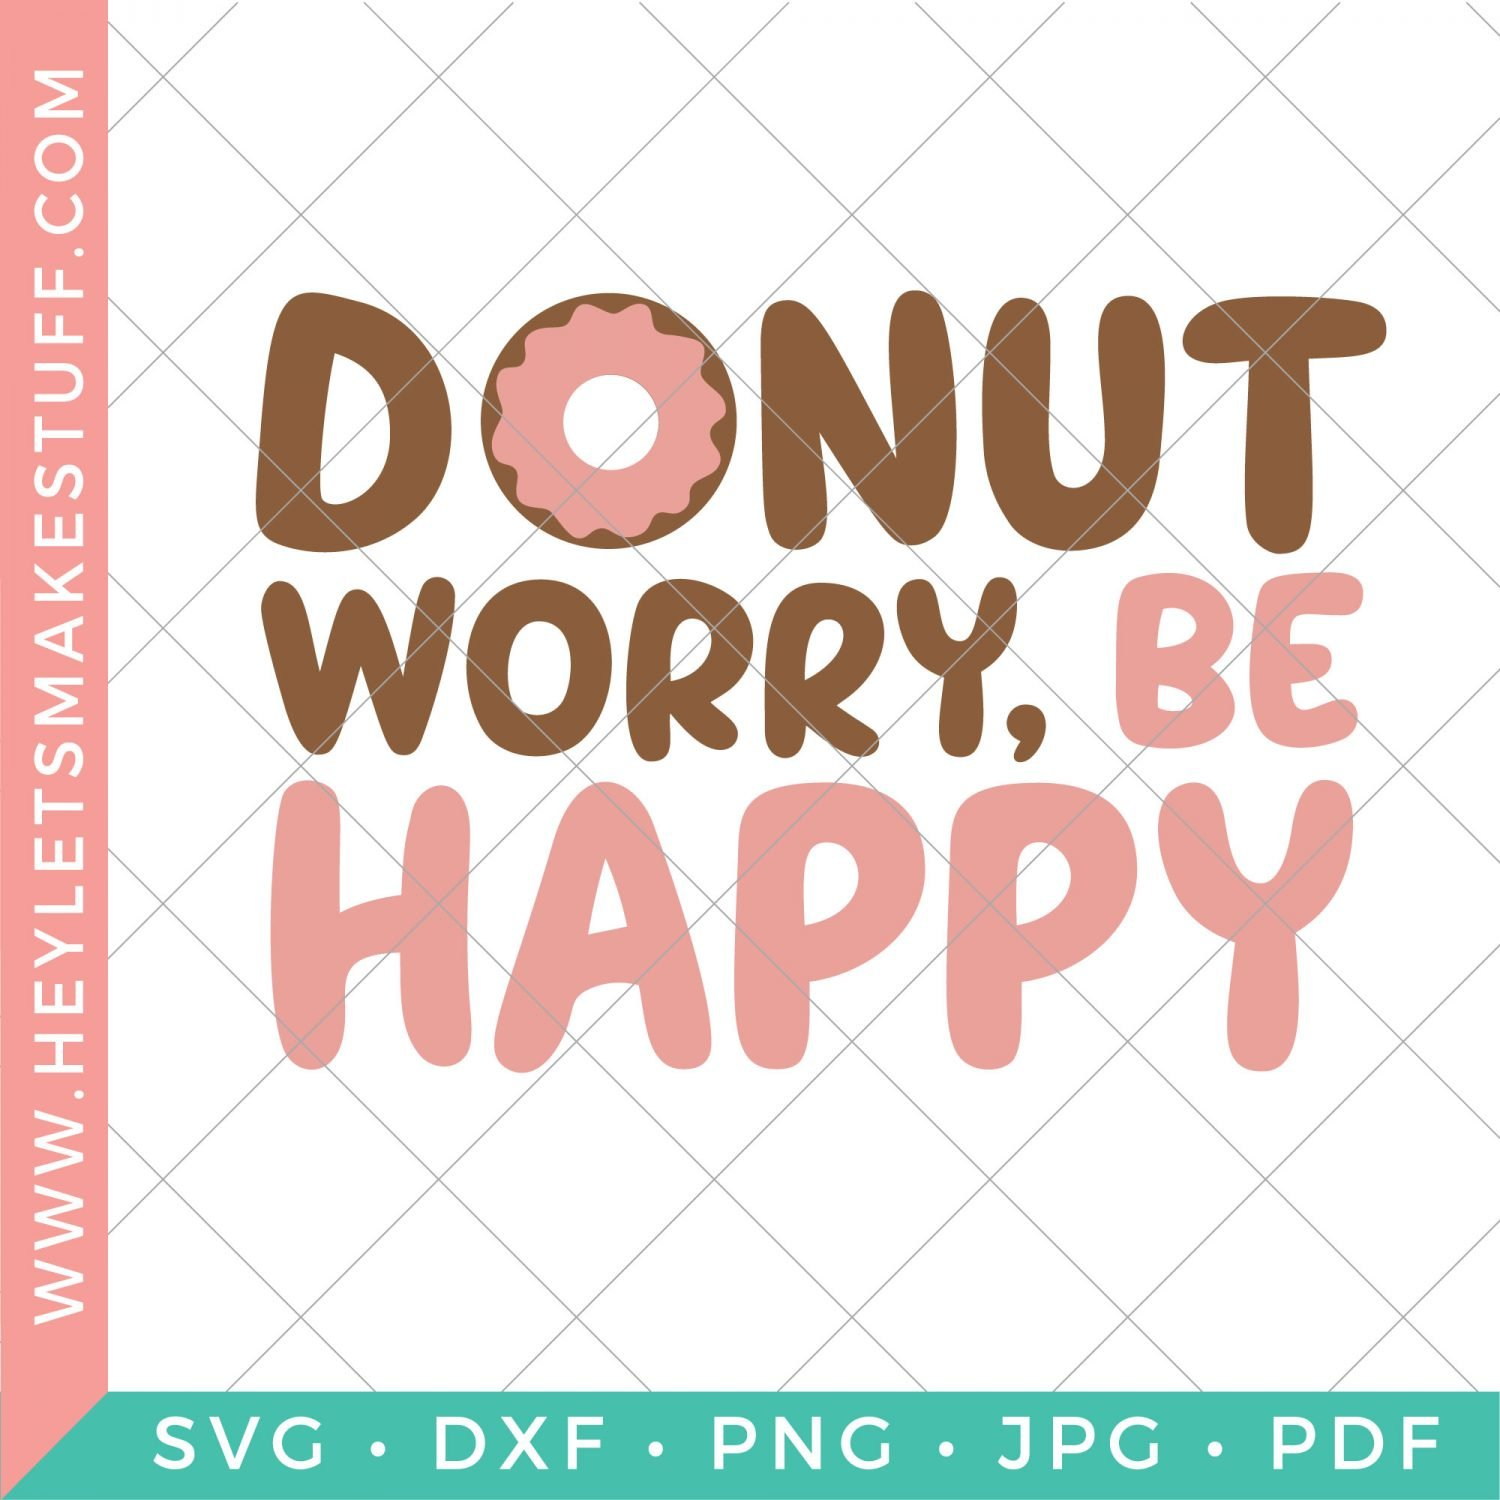 Donut Worry Be Happy SVG